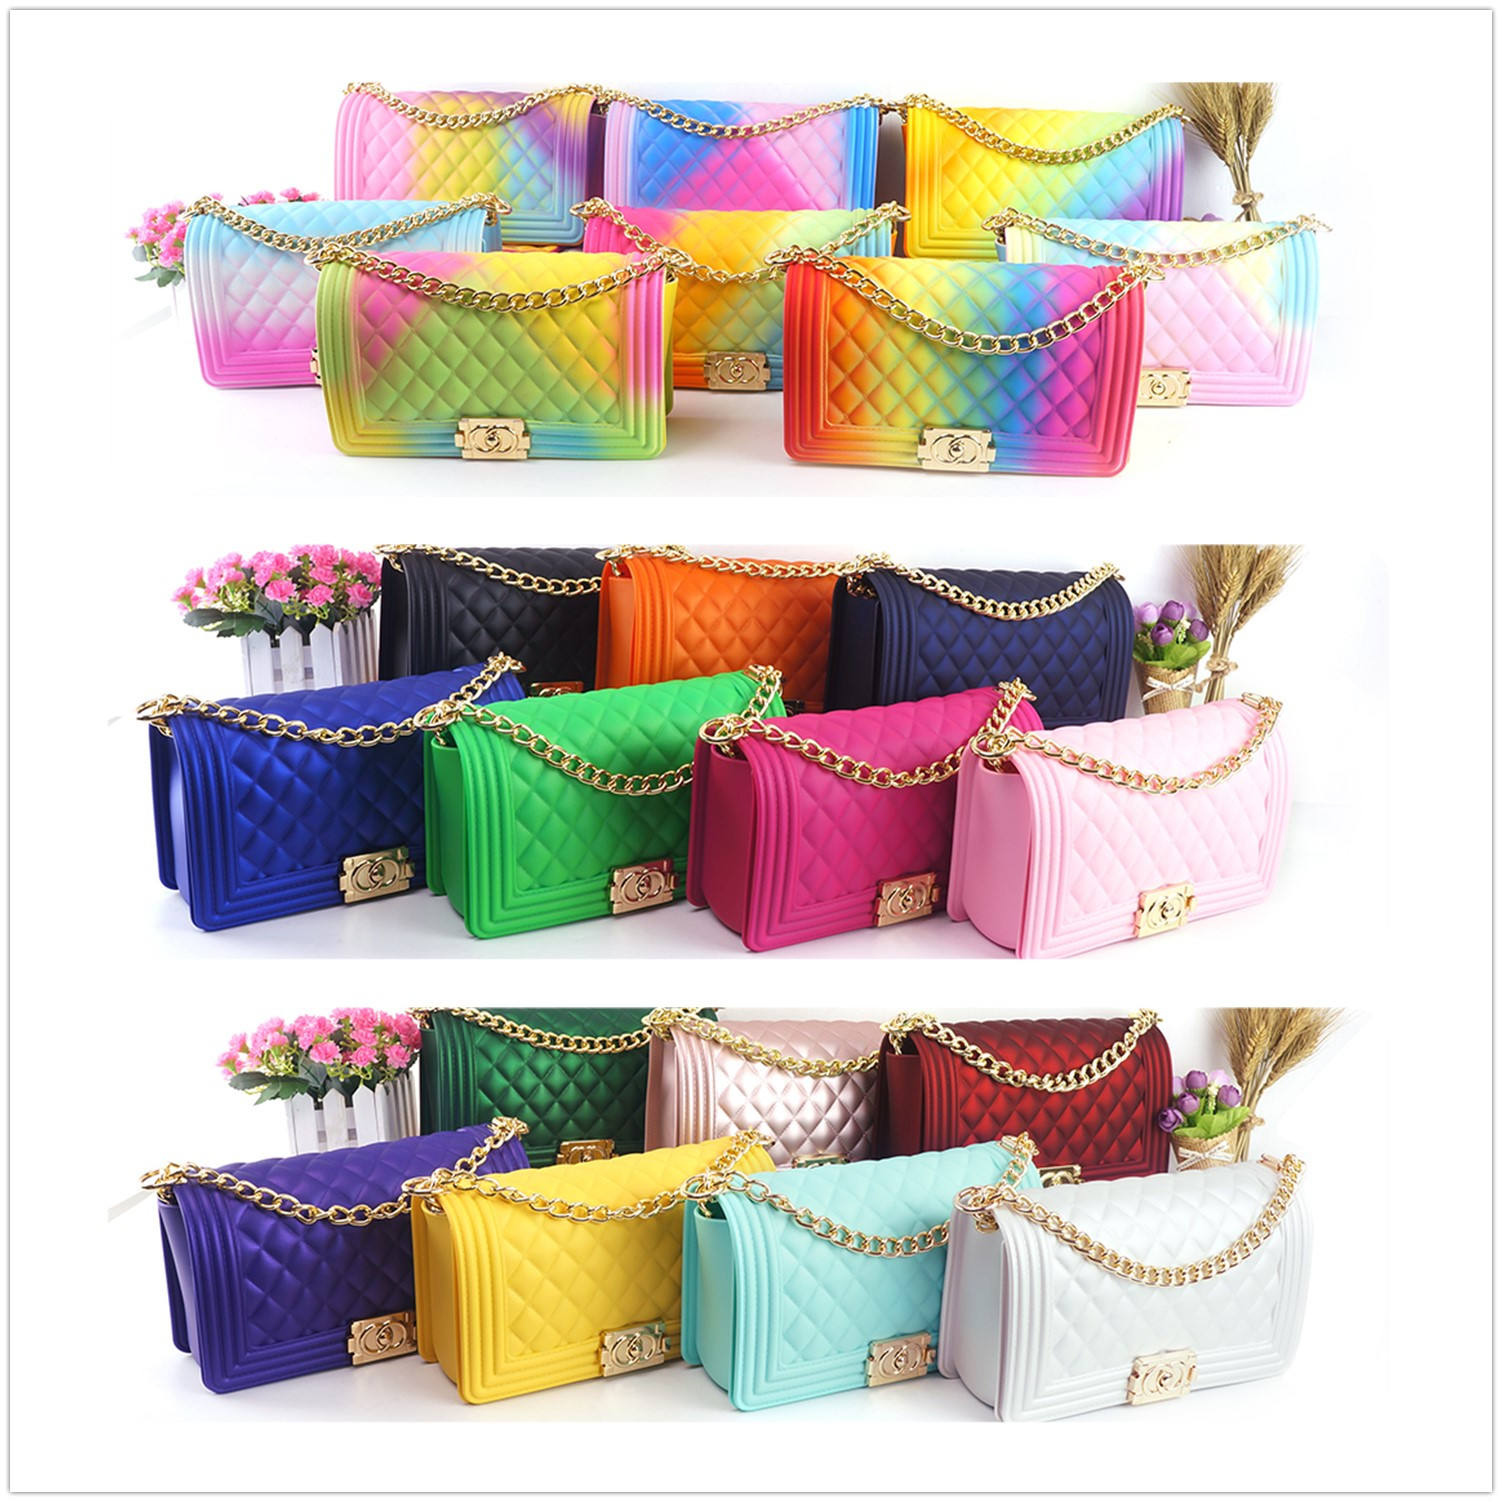 2020 hot sell Fashion 25 colors women new arrival jelly purse candy cotton color jelly handbags NEW COLORS